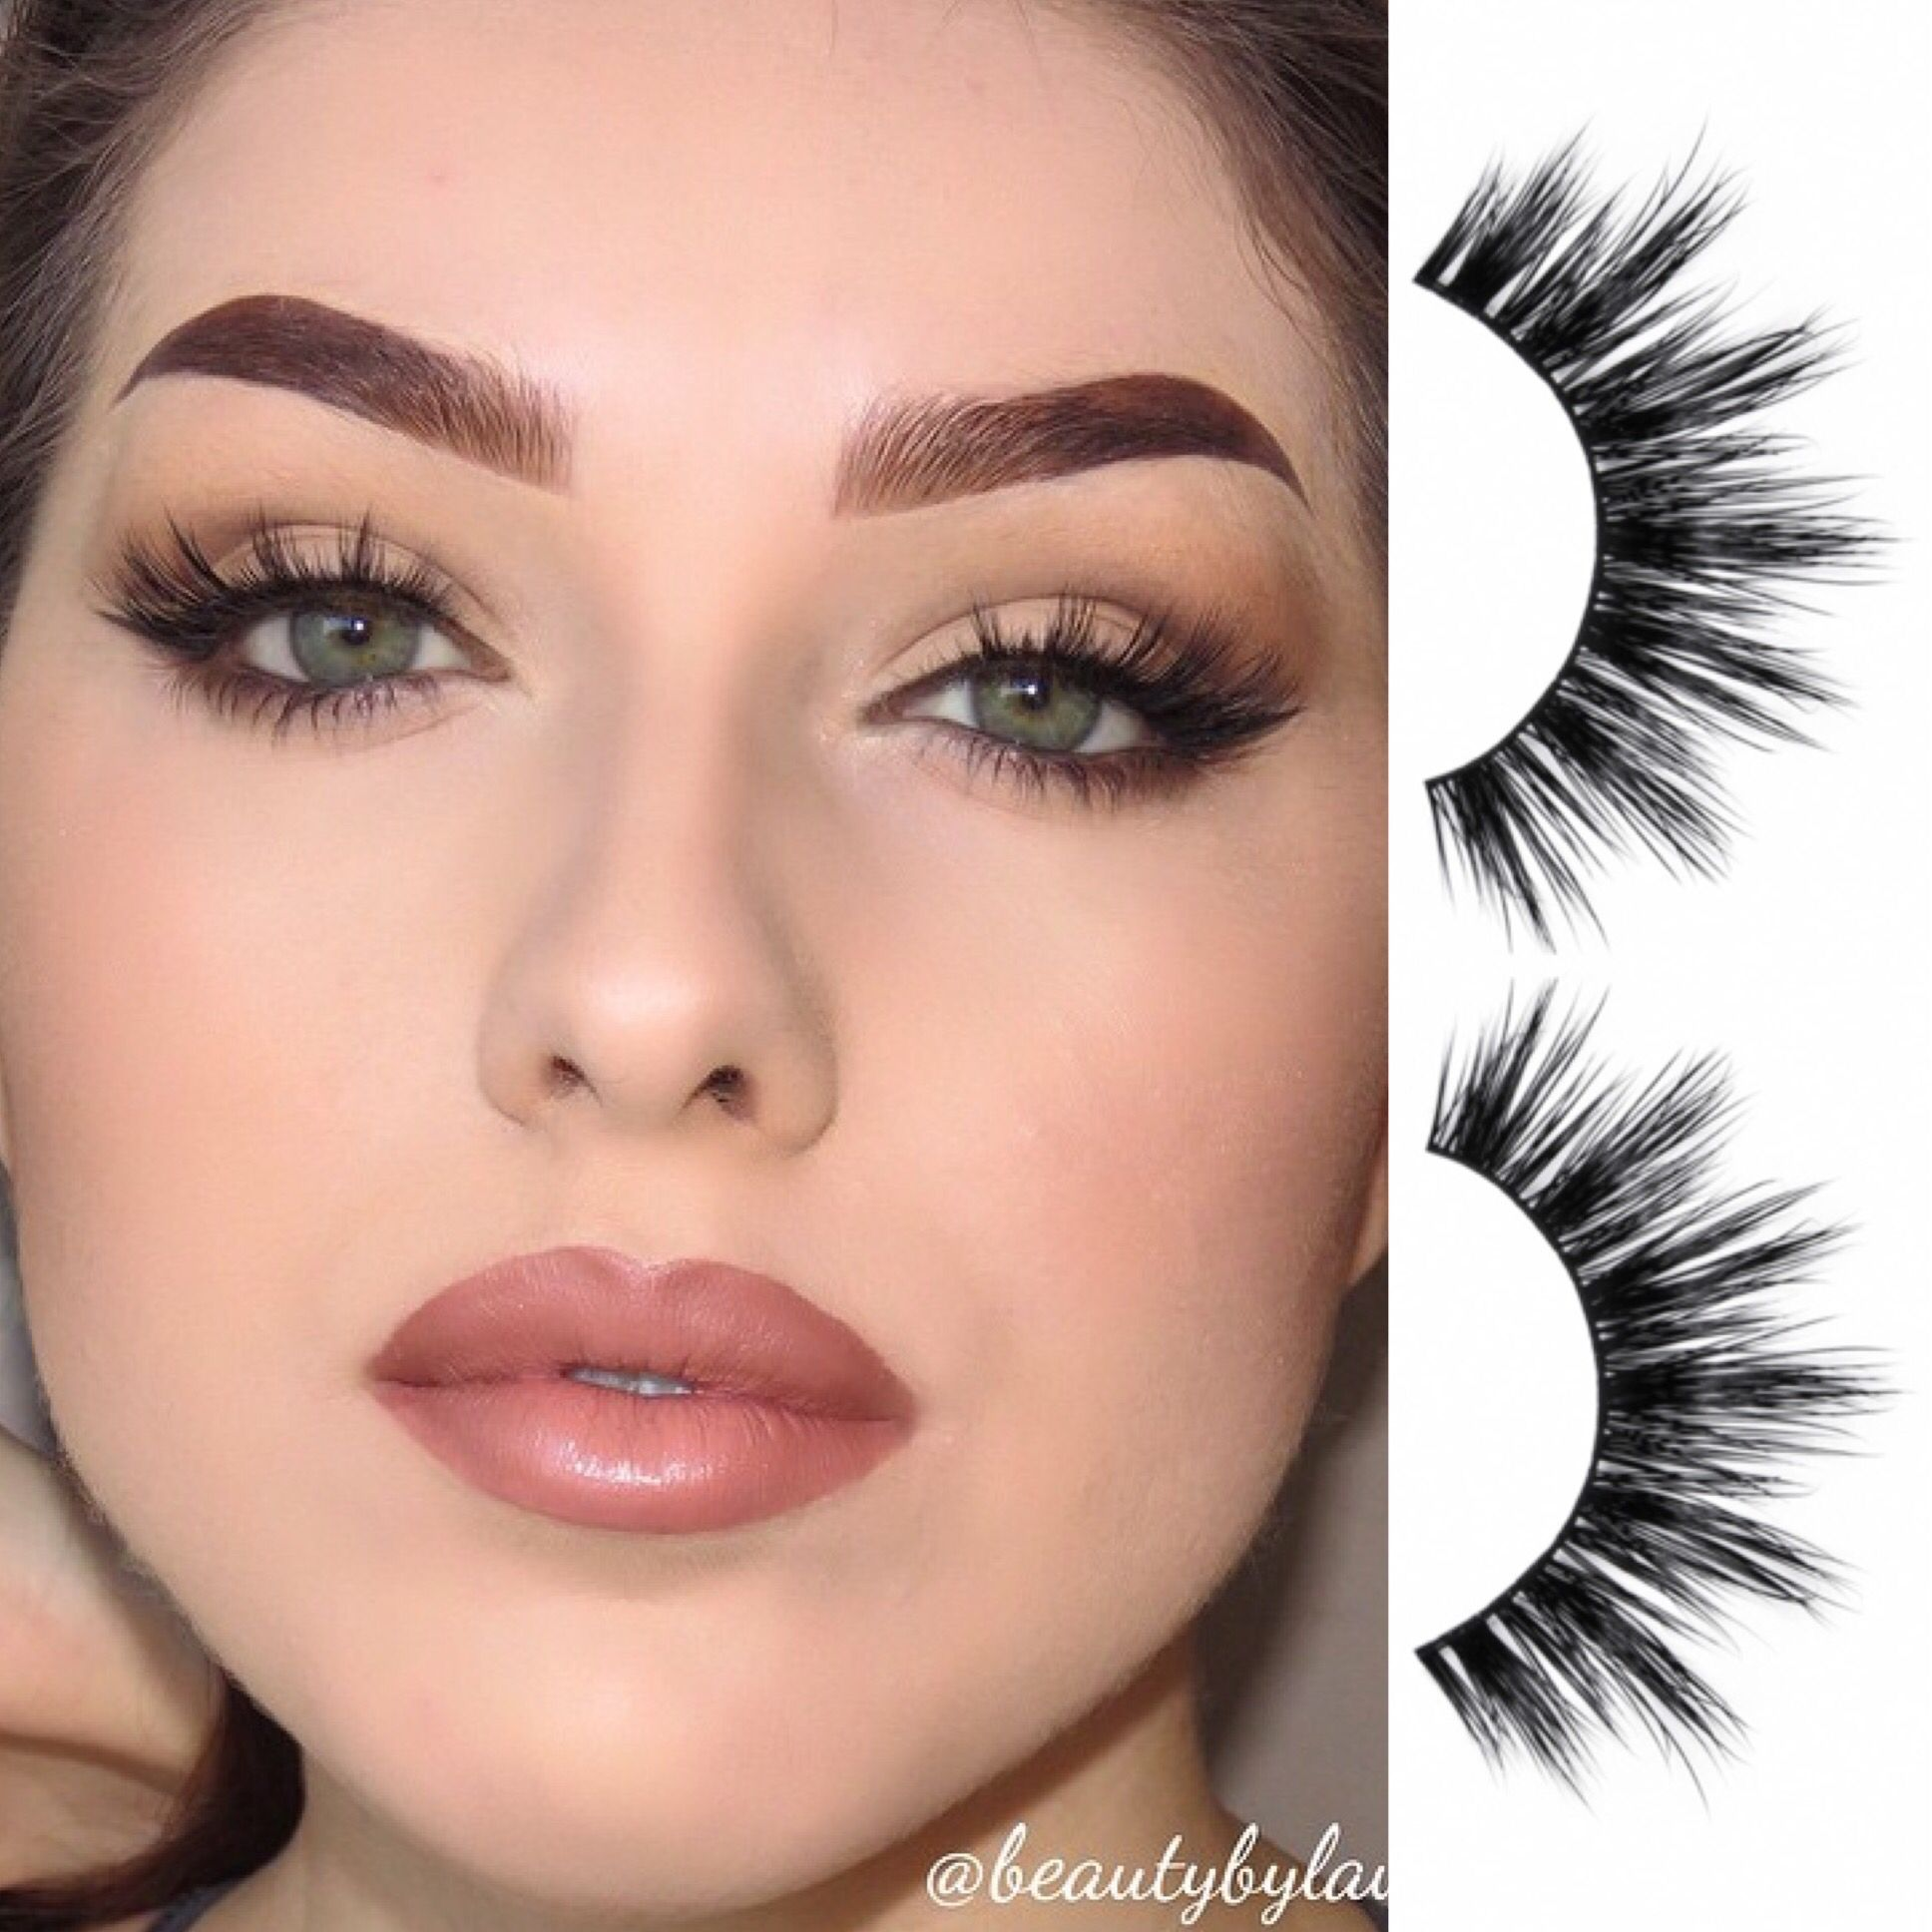 c49d0b38f4e Our doll-eyed No. 410 lashes | Medium Volume No. 410 in 2019 ...